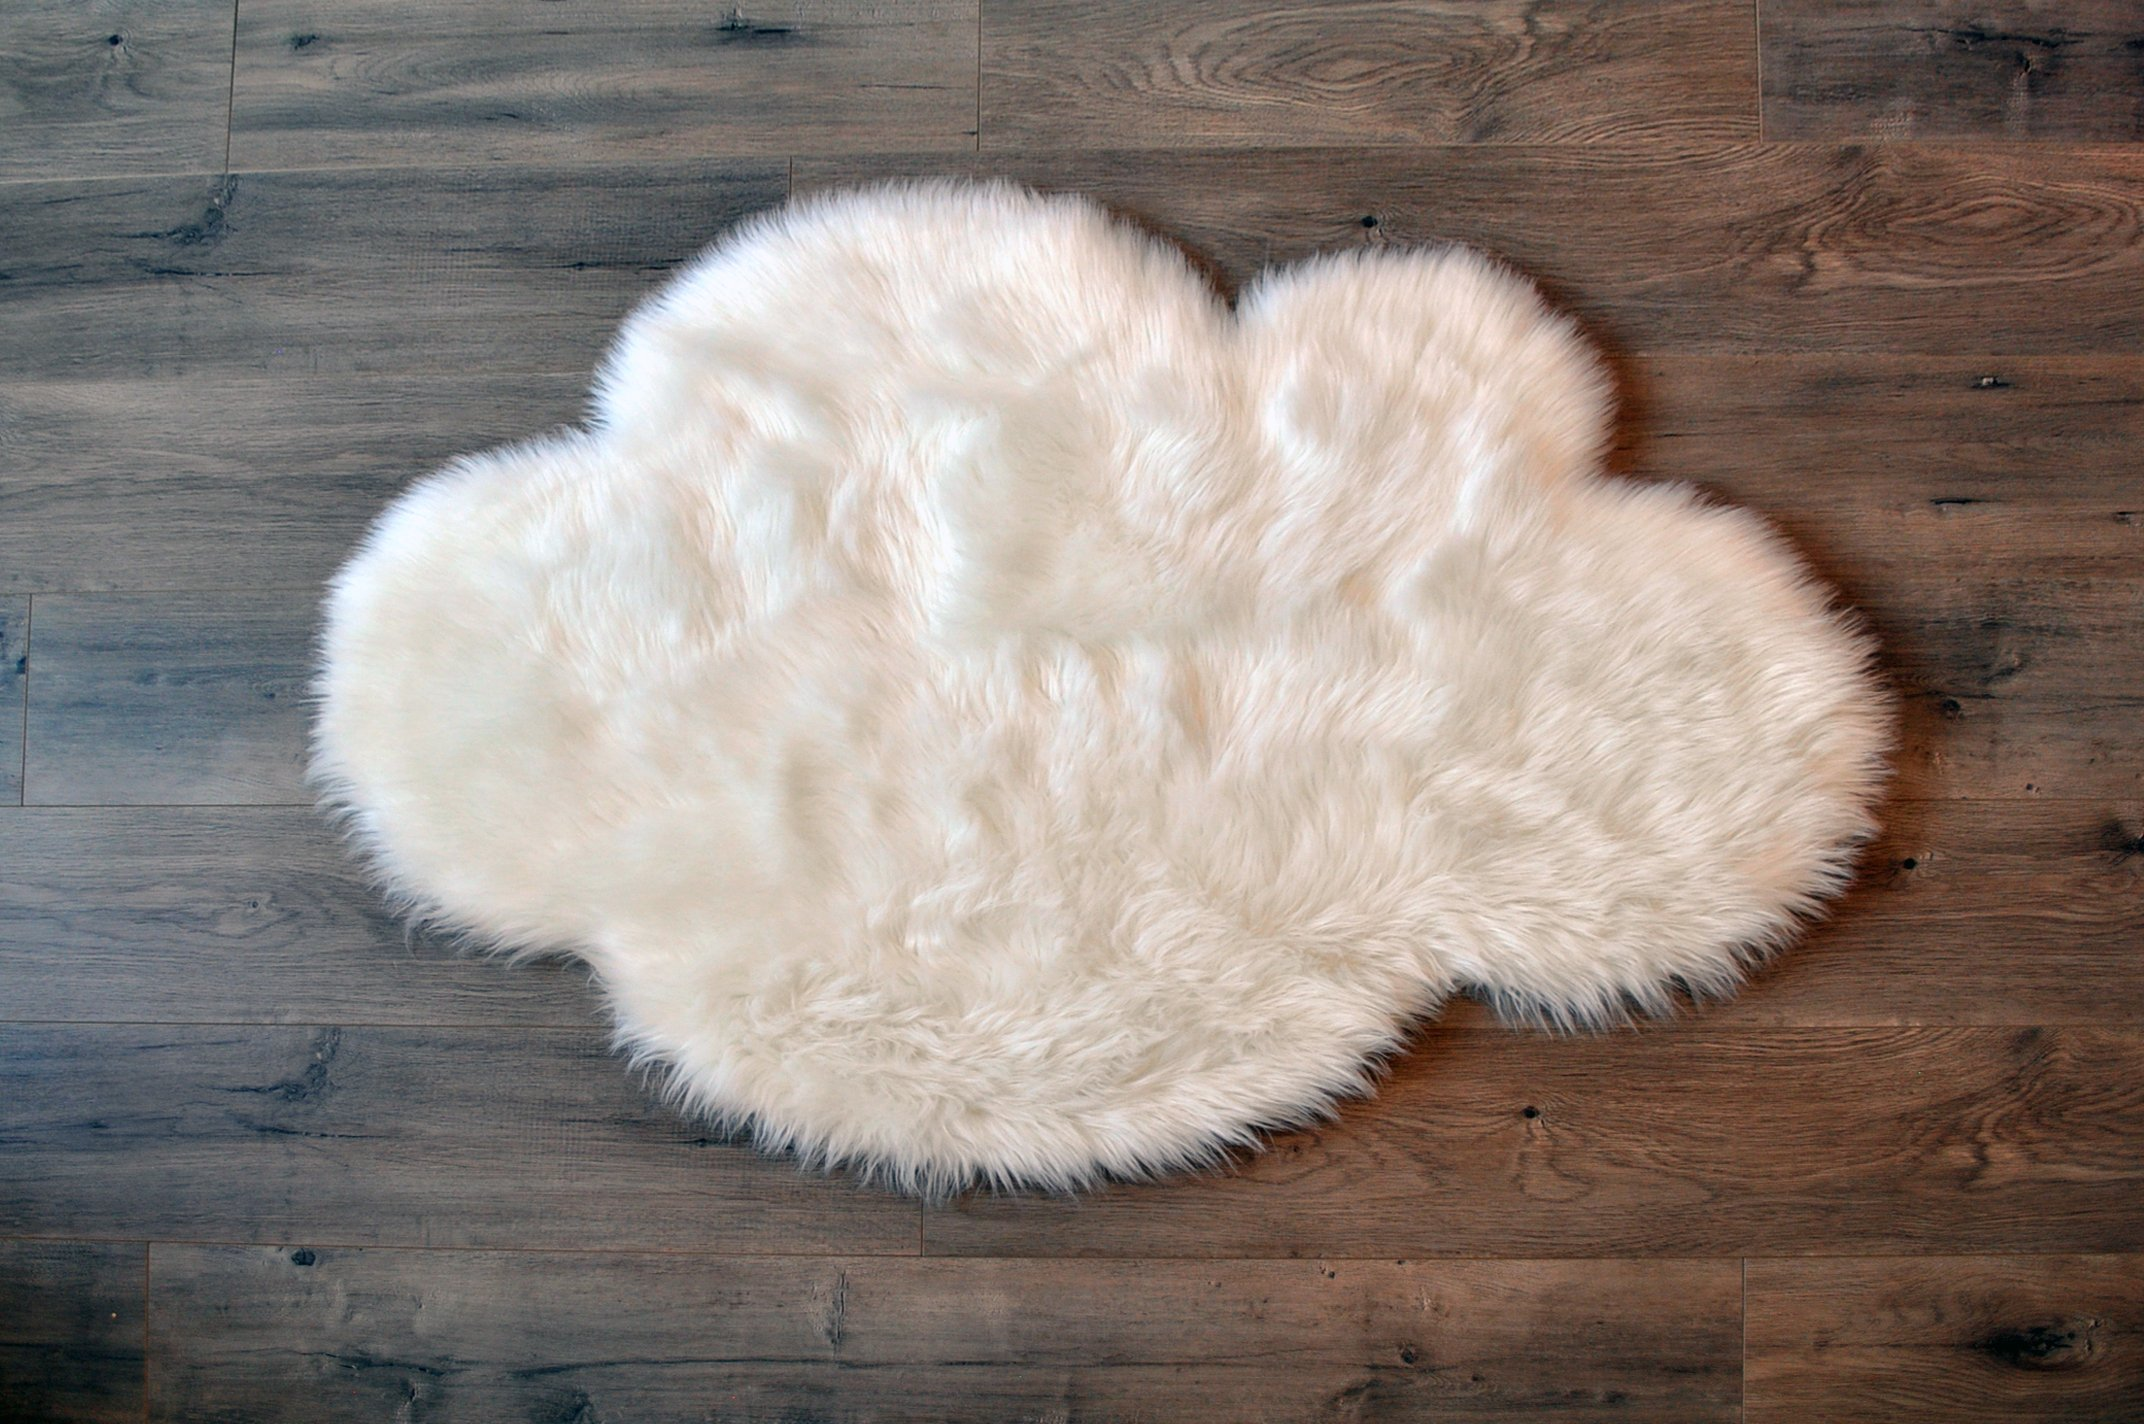 """Machine Washable Faux Sheepskin White Cloud Area Rug 32"""" x 44"""" - Soft and Silky - Perfect for Baby's Room, Nursery, playroom (2' 7"""" x 3' 7"""") - White Cloud"""